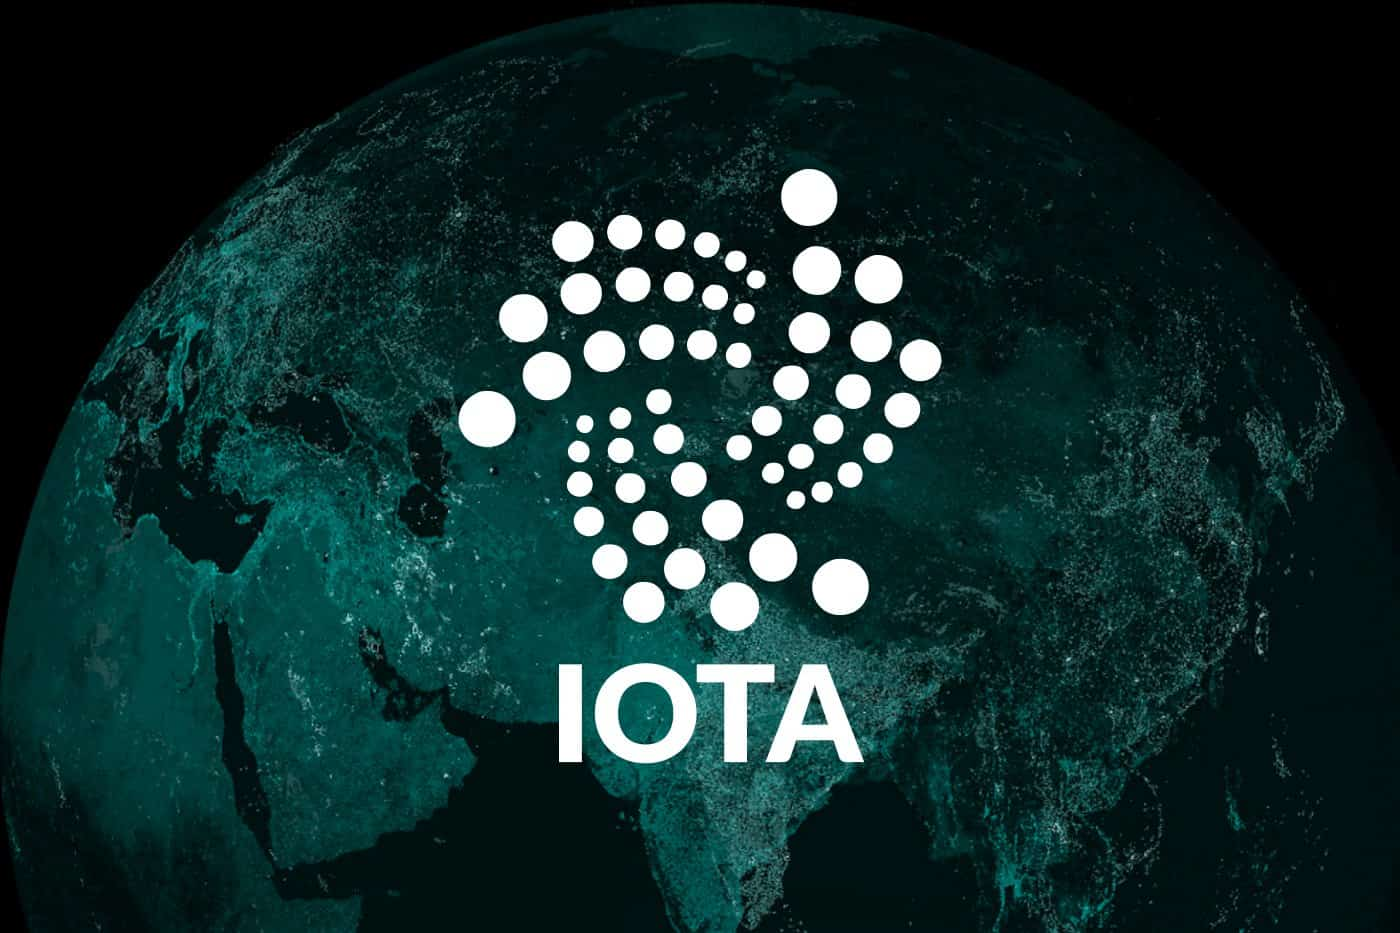 IOTA can be a profitable investment, here's why